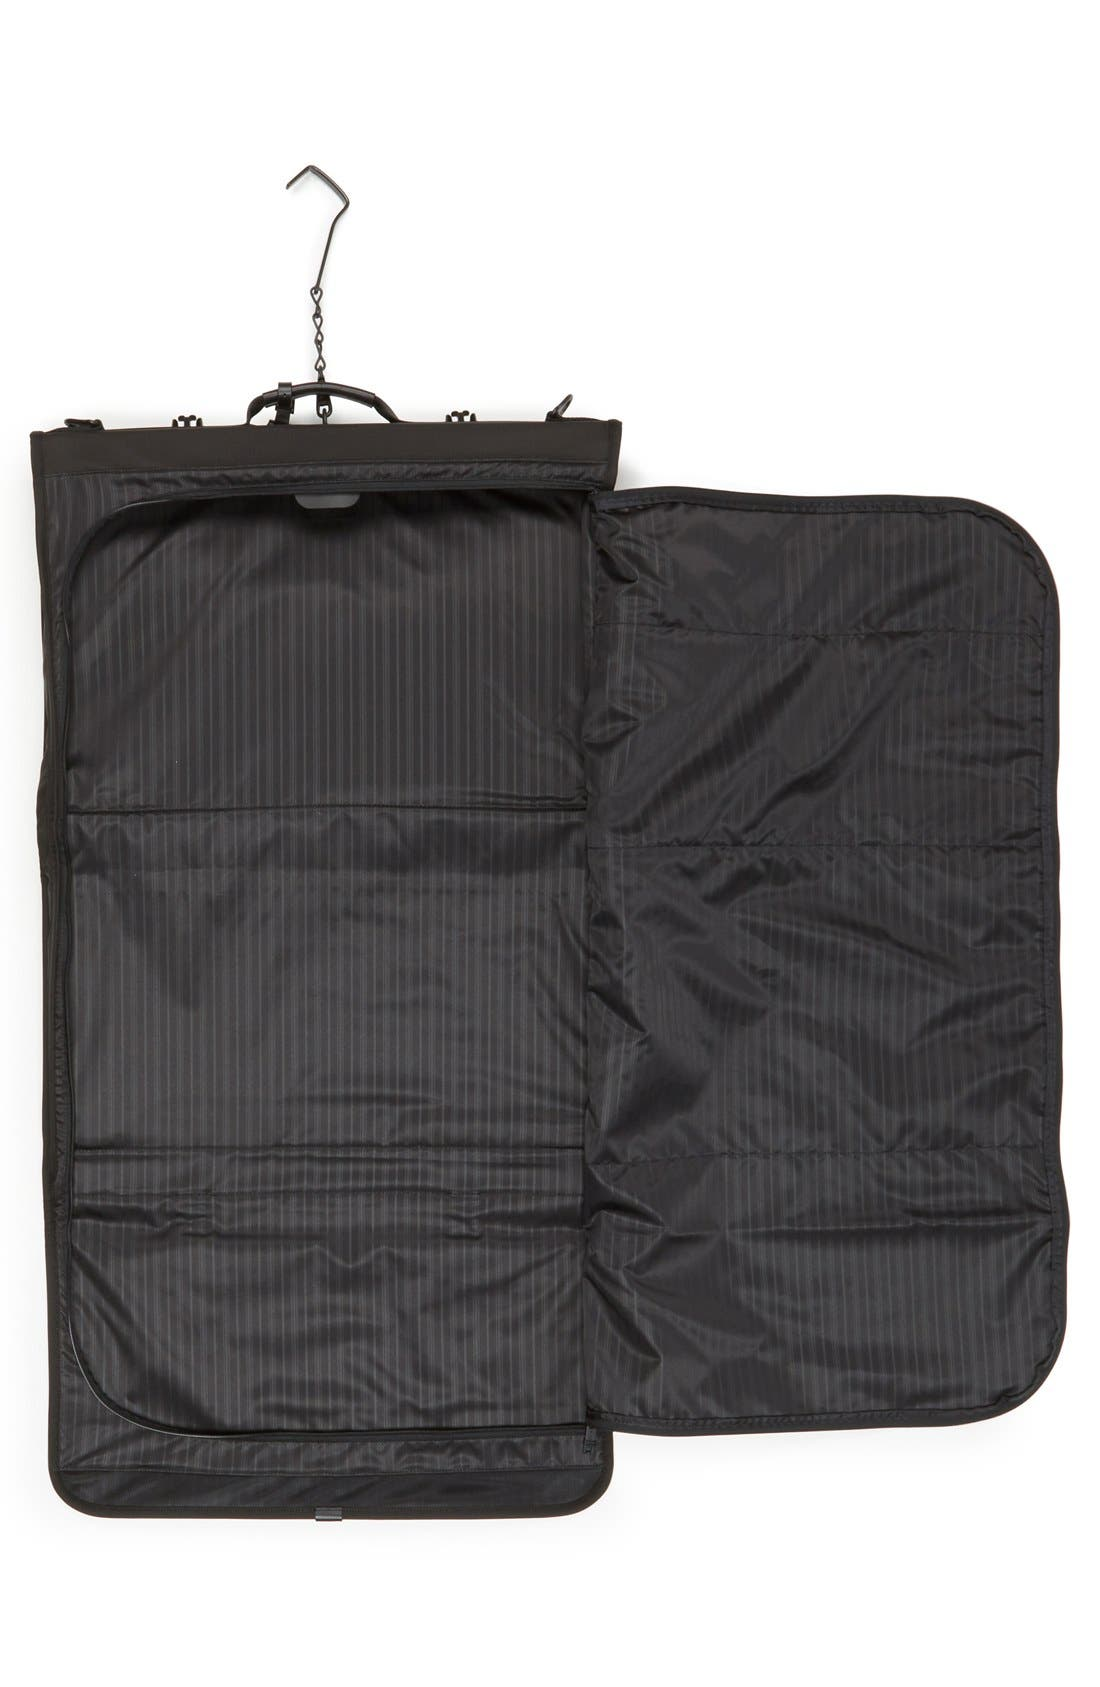 Alternate Image 3  - Tumi 'Alpha 2' Trifold Carry-On Garment Bag (22 Inch)